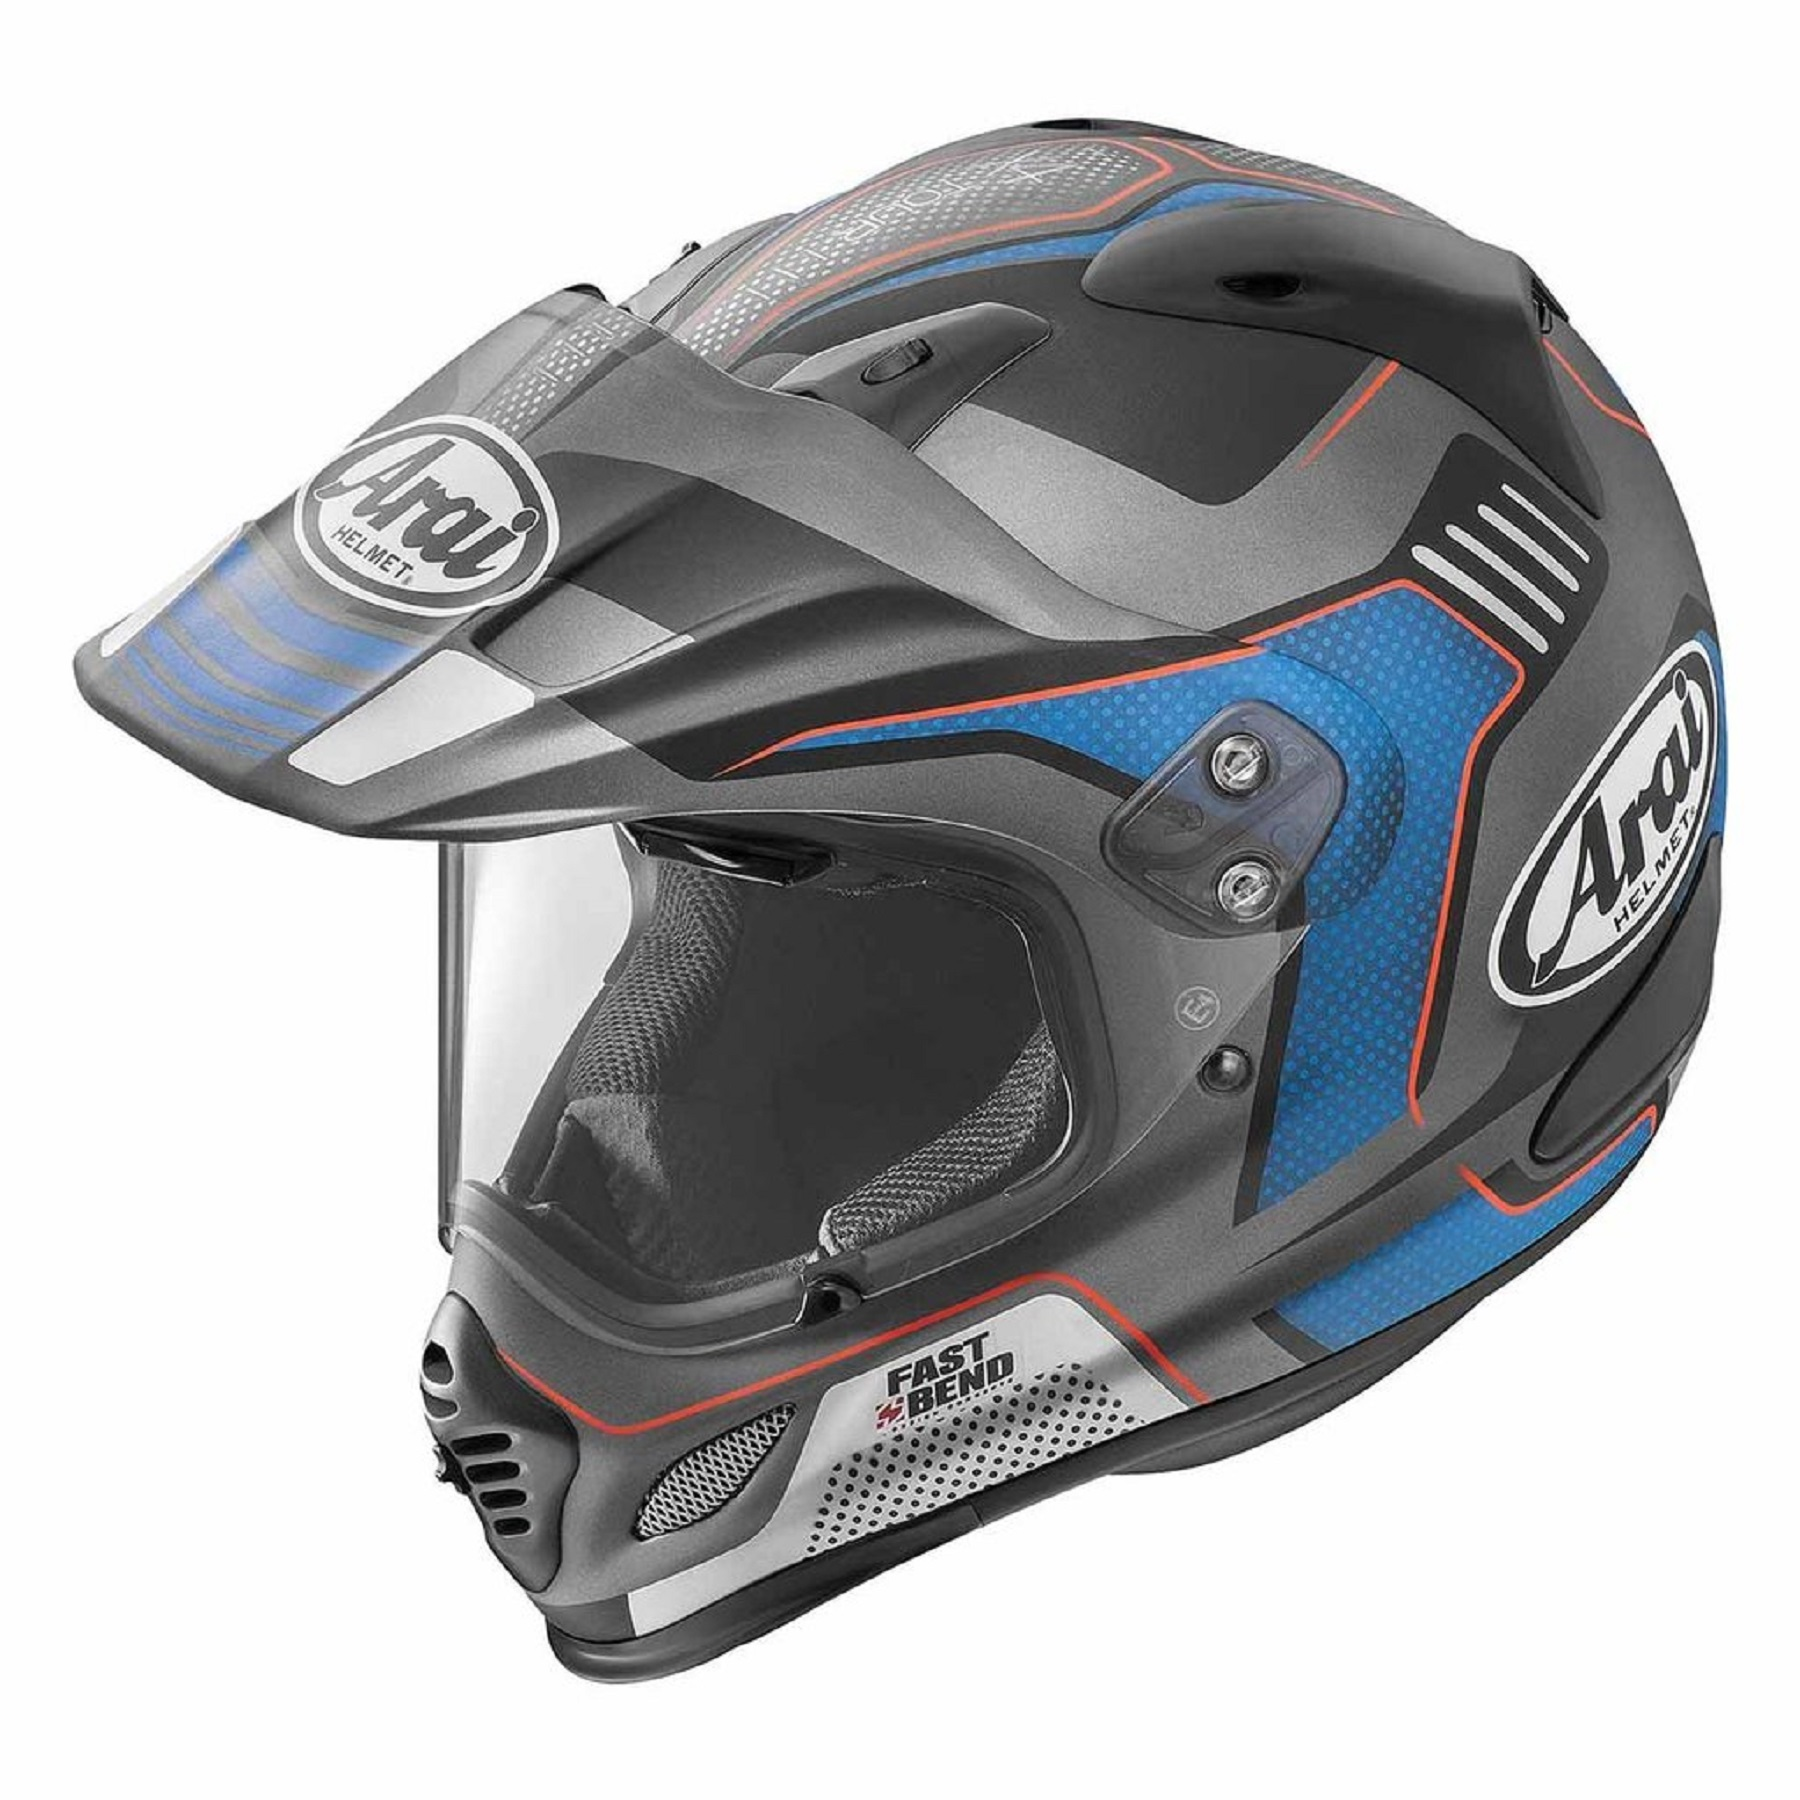 Professional Review Of Arai Xd4 Helmet For May 2020